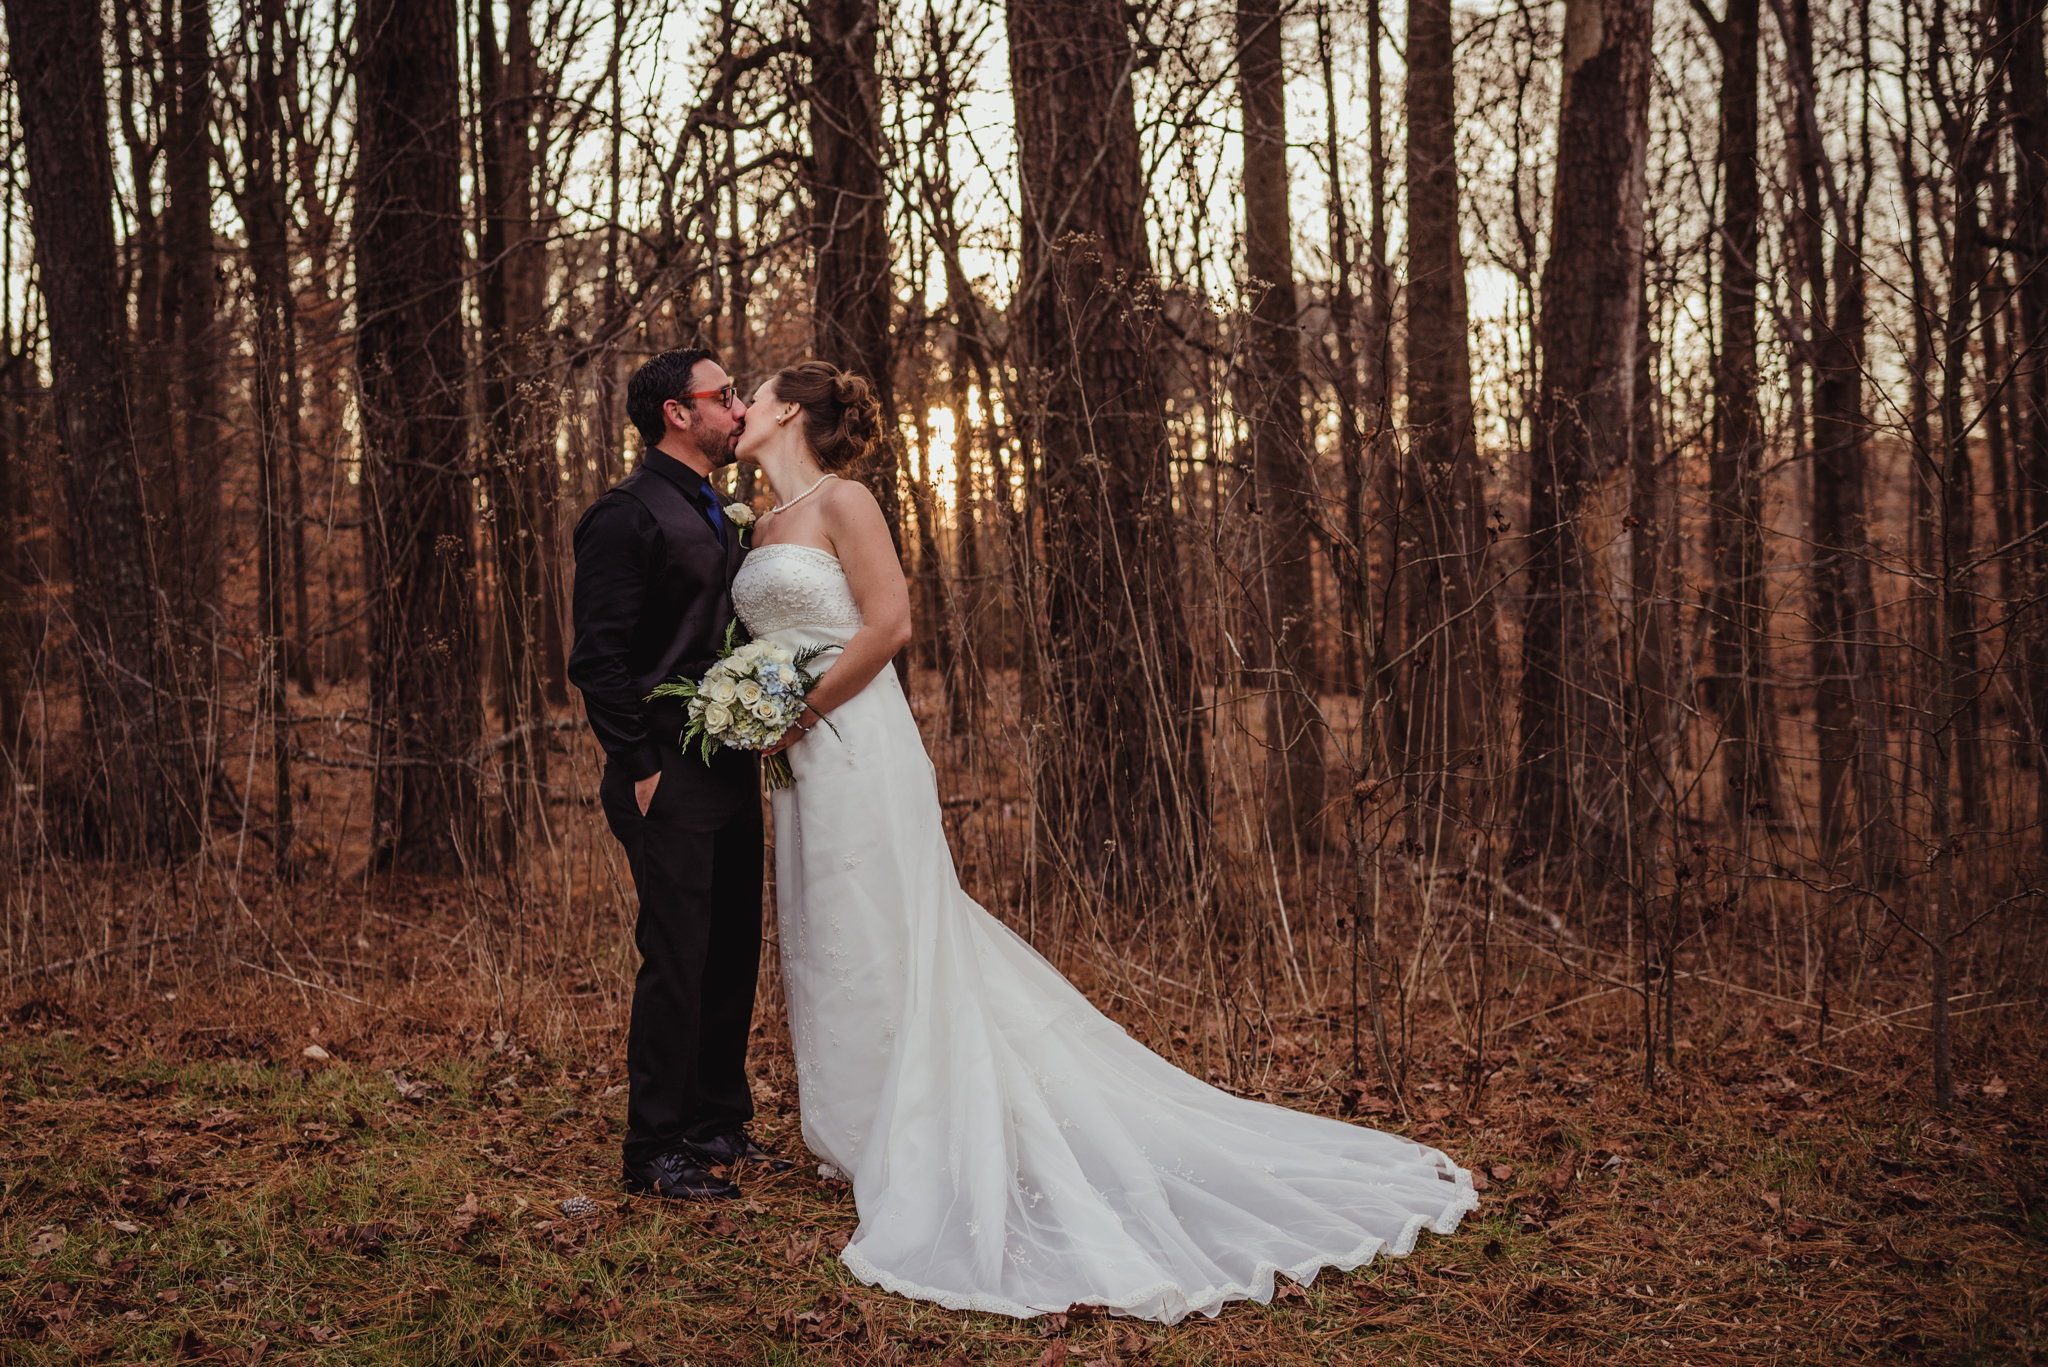 the-bride-and-groom-pose-for-a-kiss-at-a-local-park-here-in-raleigh.jpg